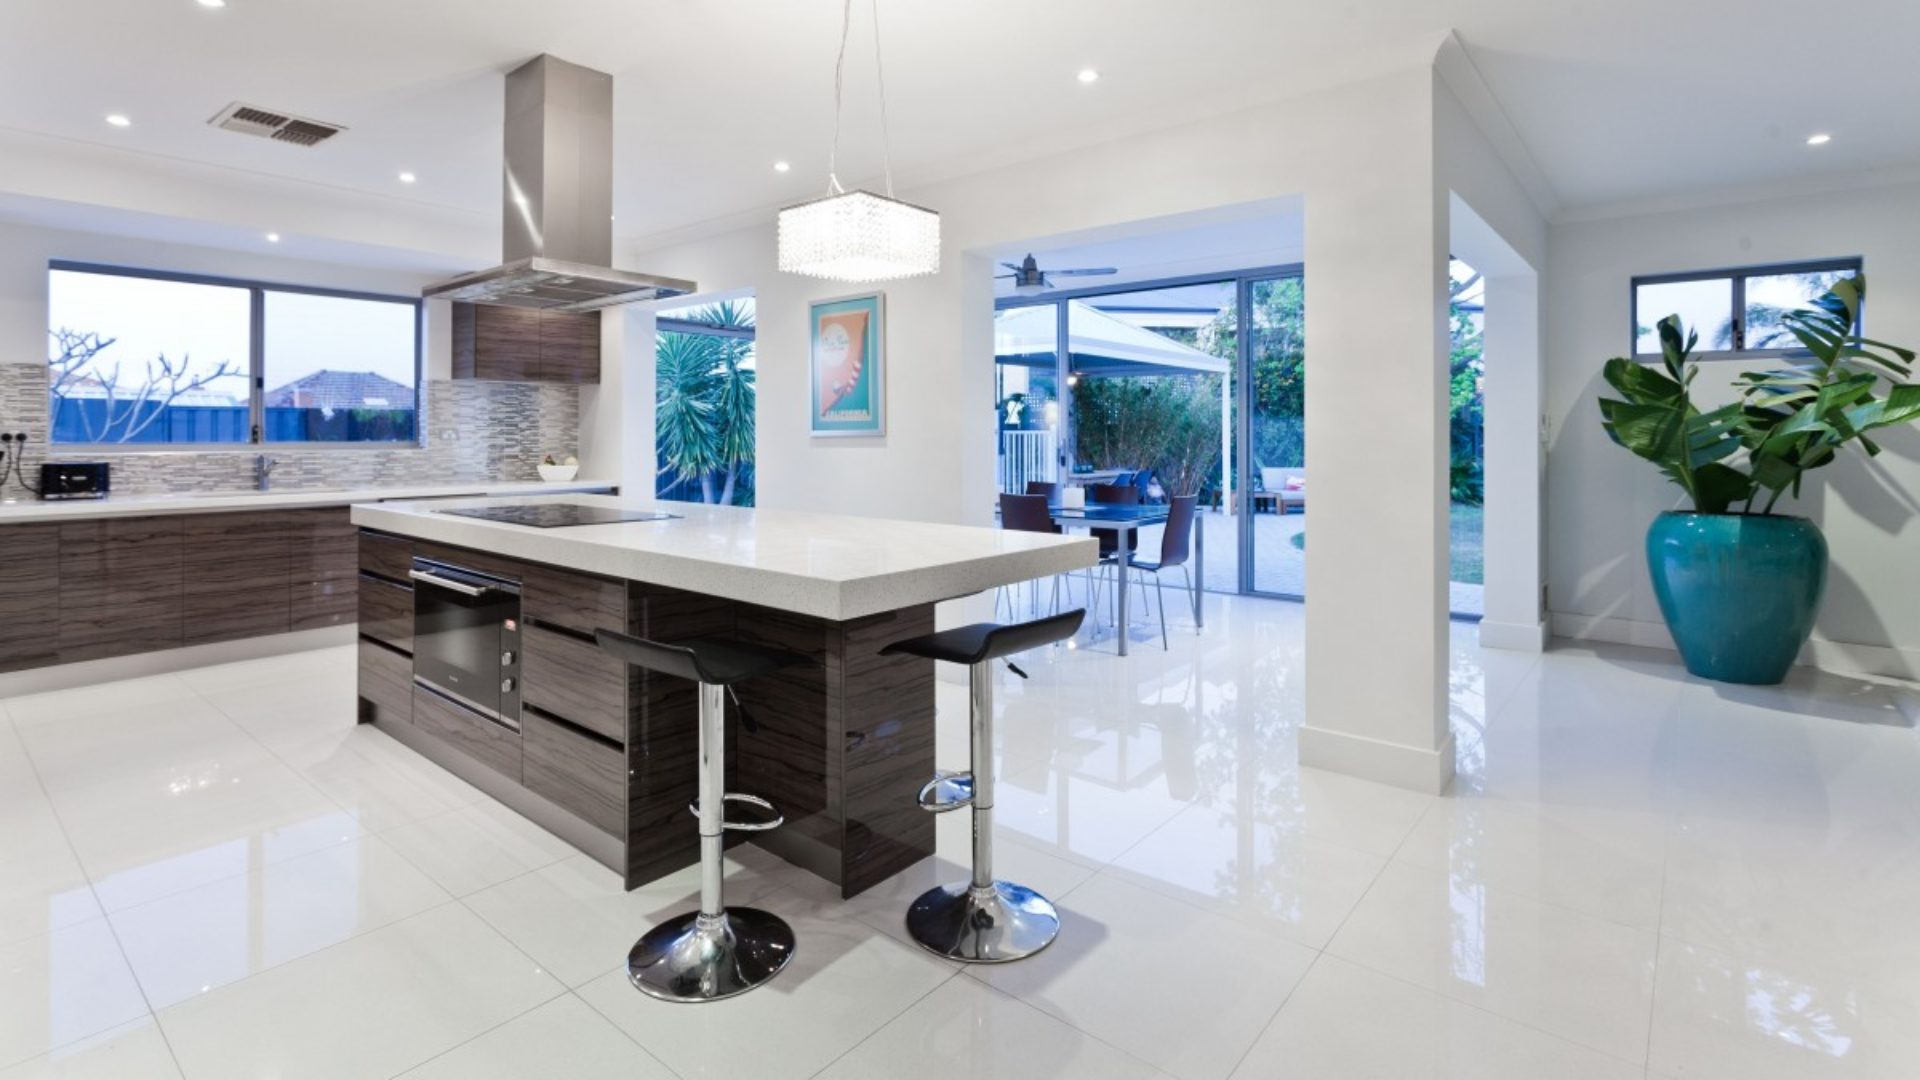 South Florida Contracting Services